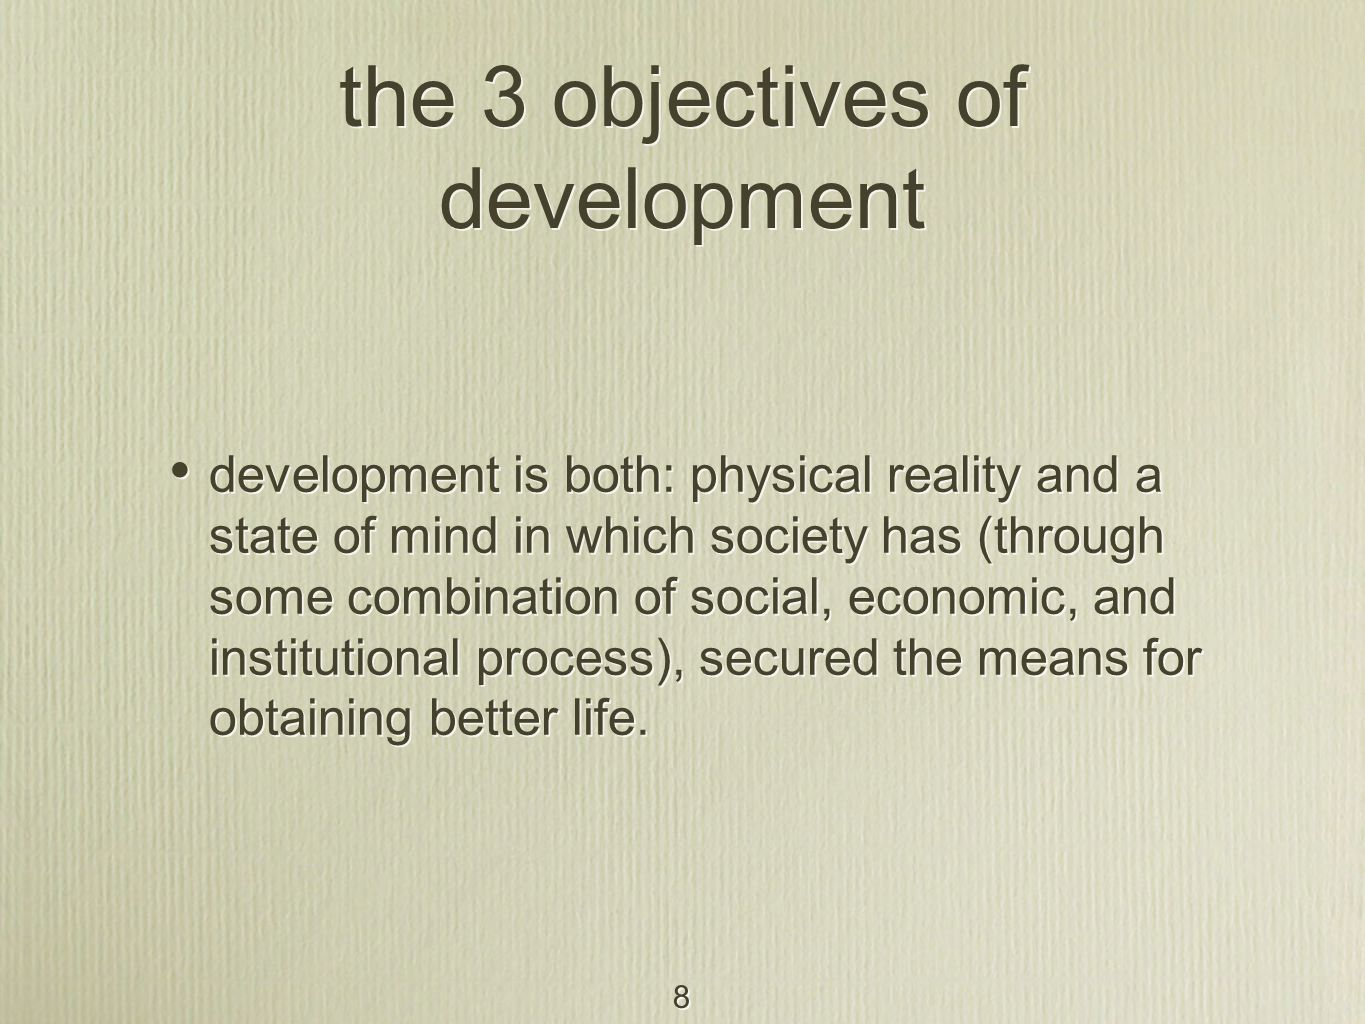 the 3 objectives of development